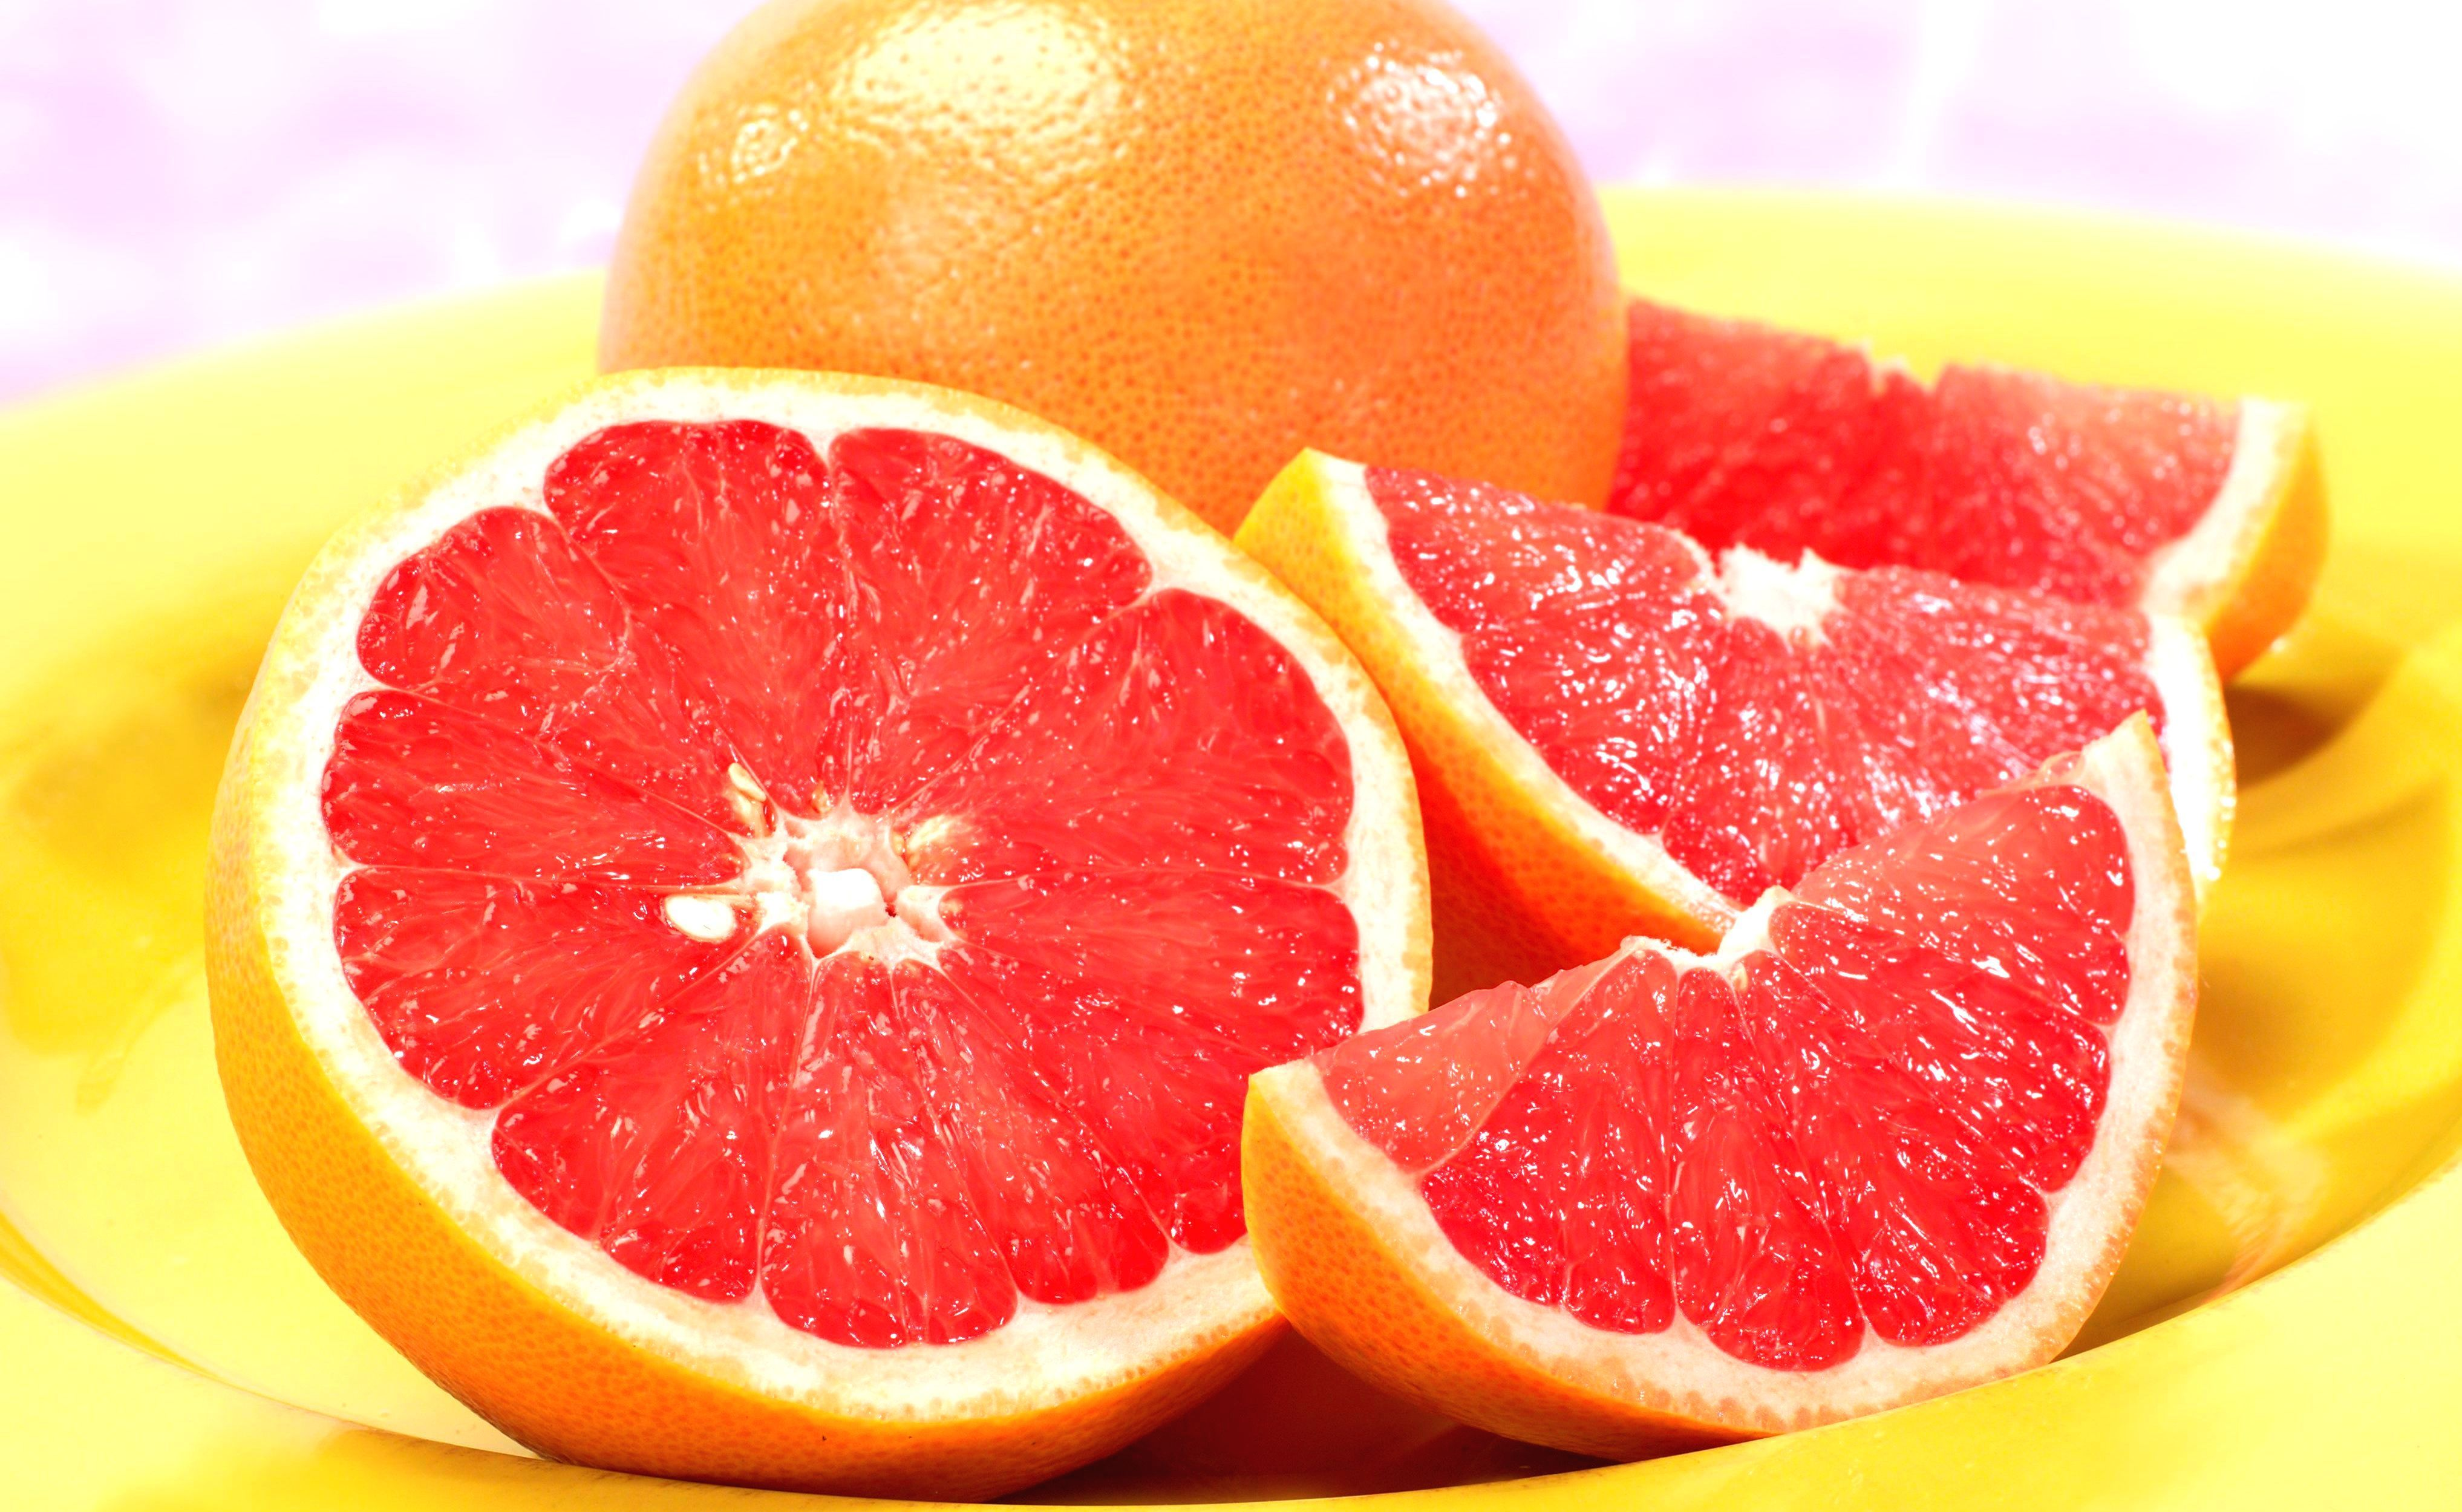 Grapefruit Wallpapers hd